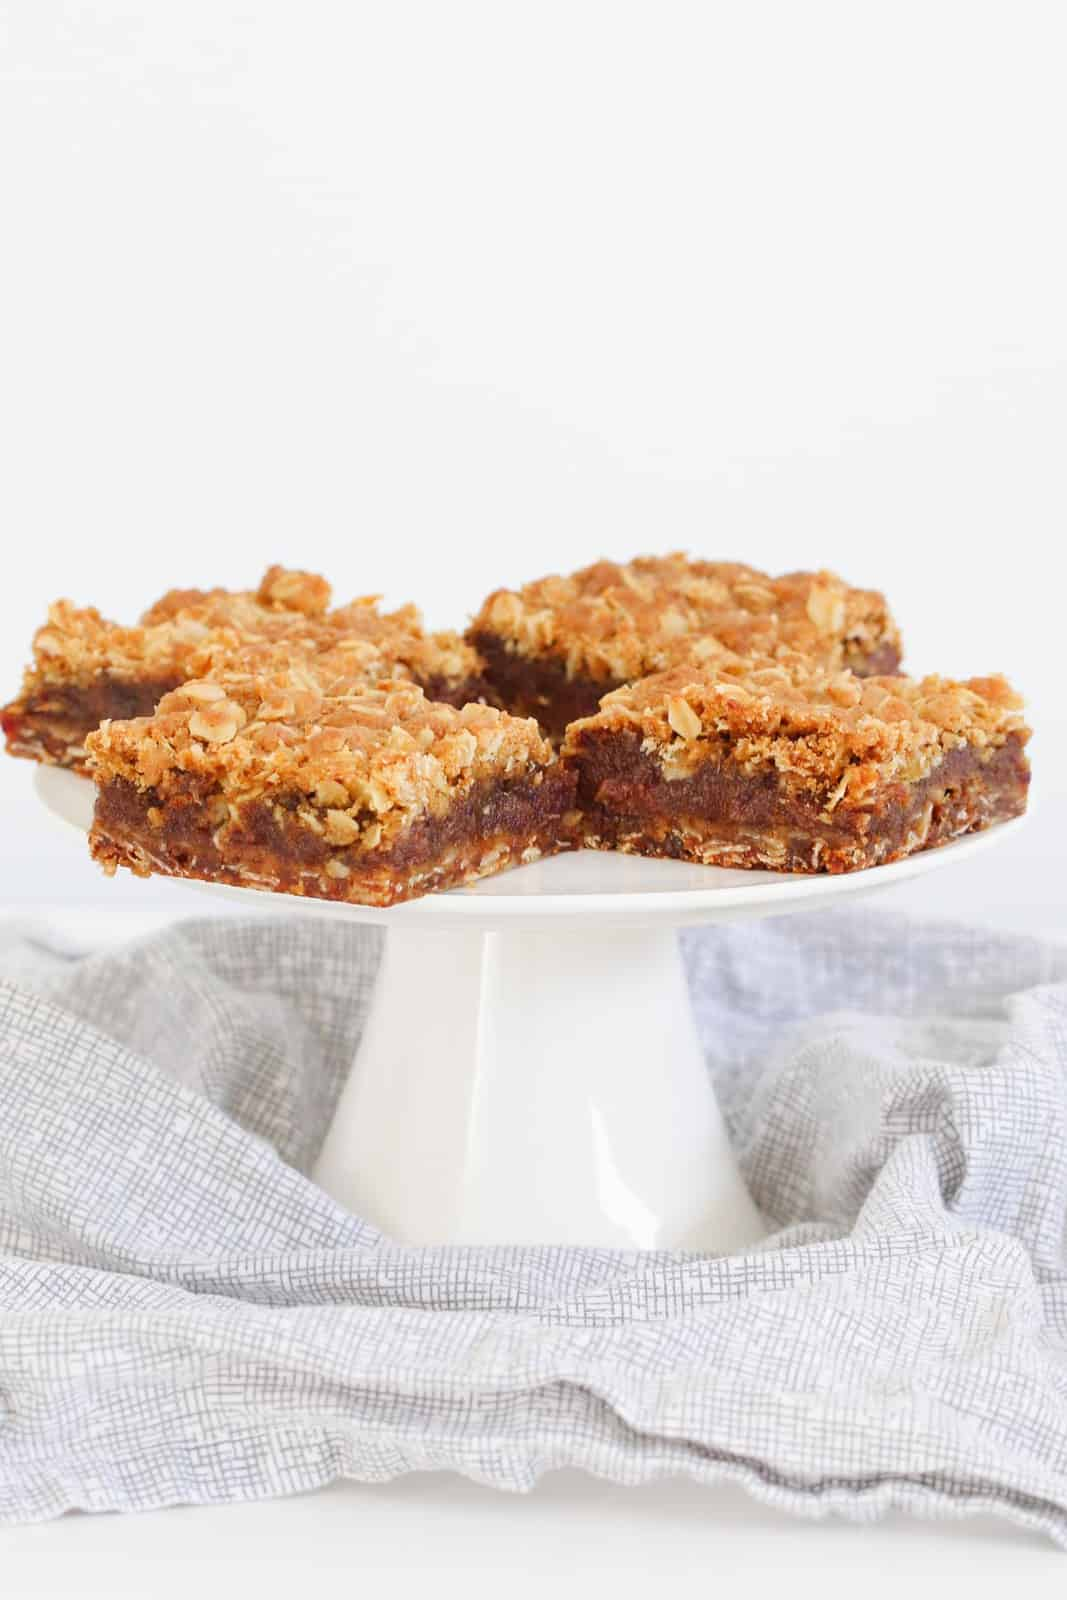 Four squares of a crumble and date slice, served on a white cake stand